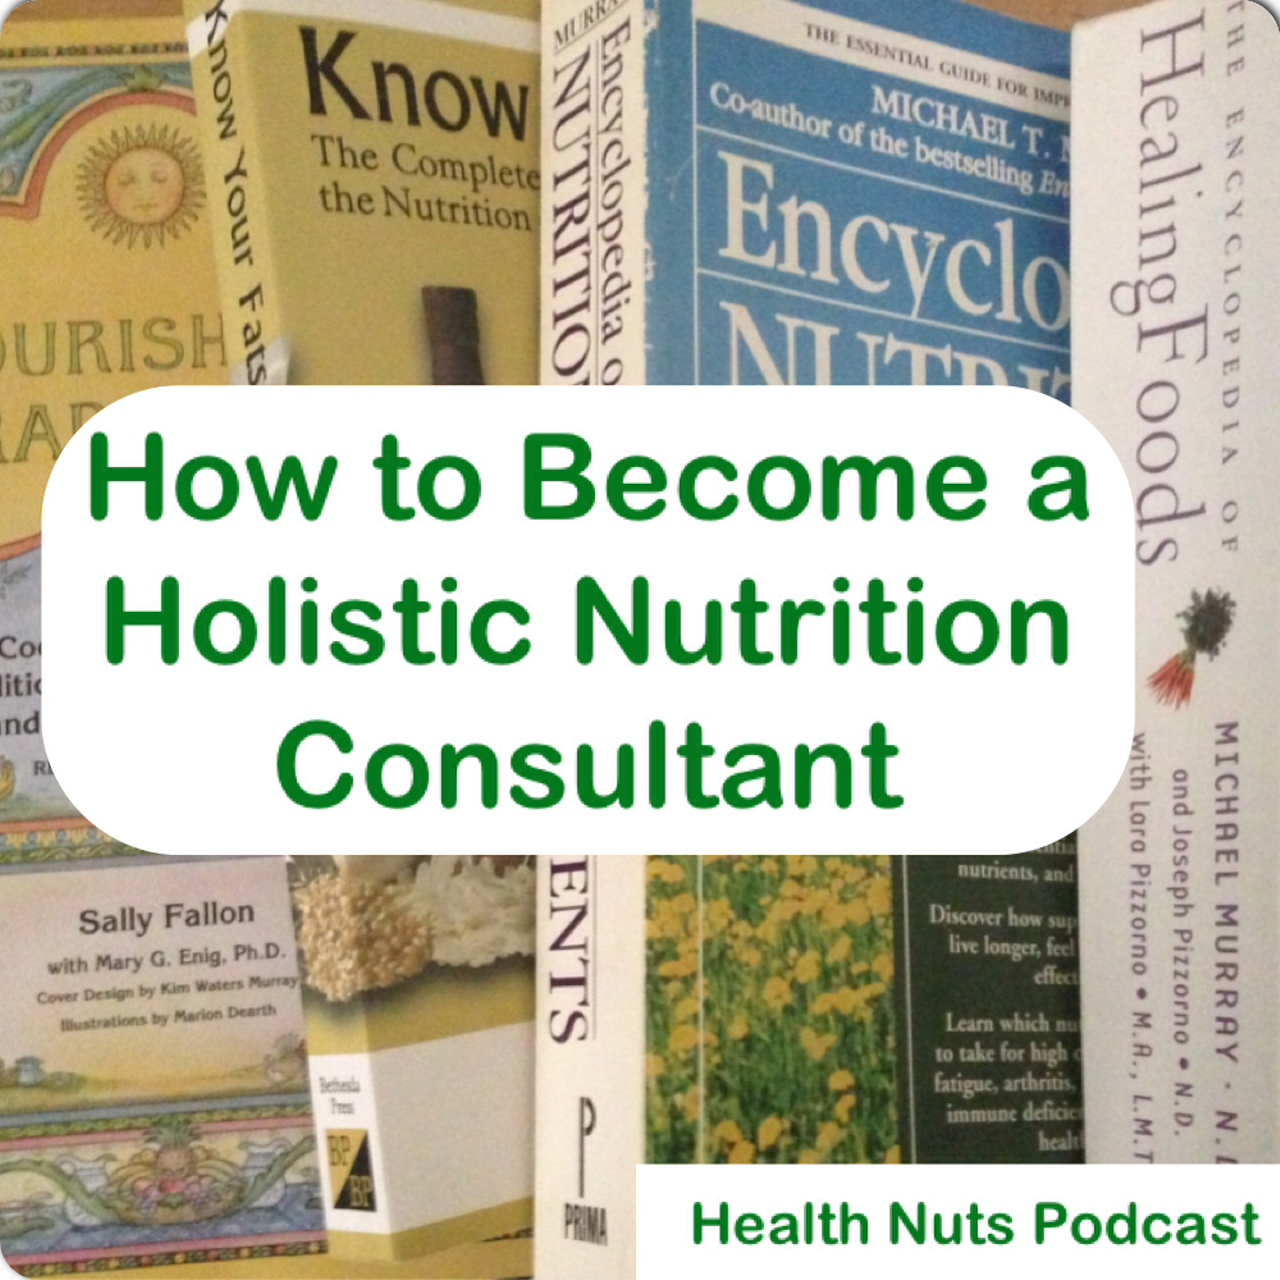 Holistic nutrition degree online besto blog how to become a holistic nutritionist or nutrition consultant xflitez Images